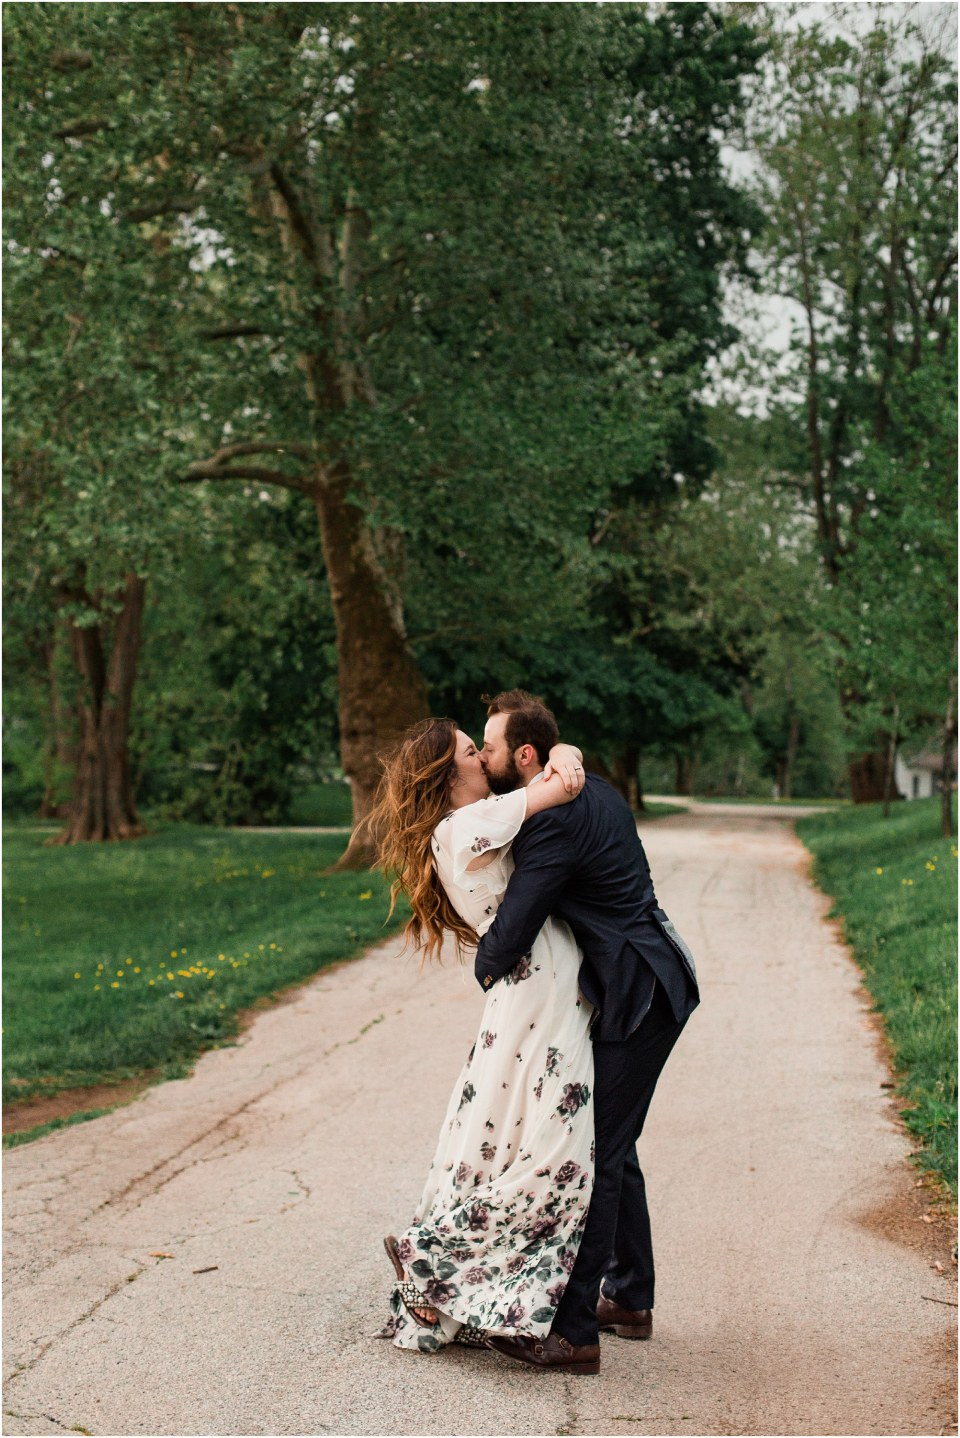 Ryan & Lauren's Boho-Chic Engagement Session at Valley Forge Park Photos_0004.jpg